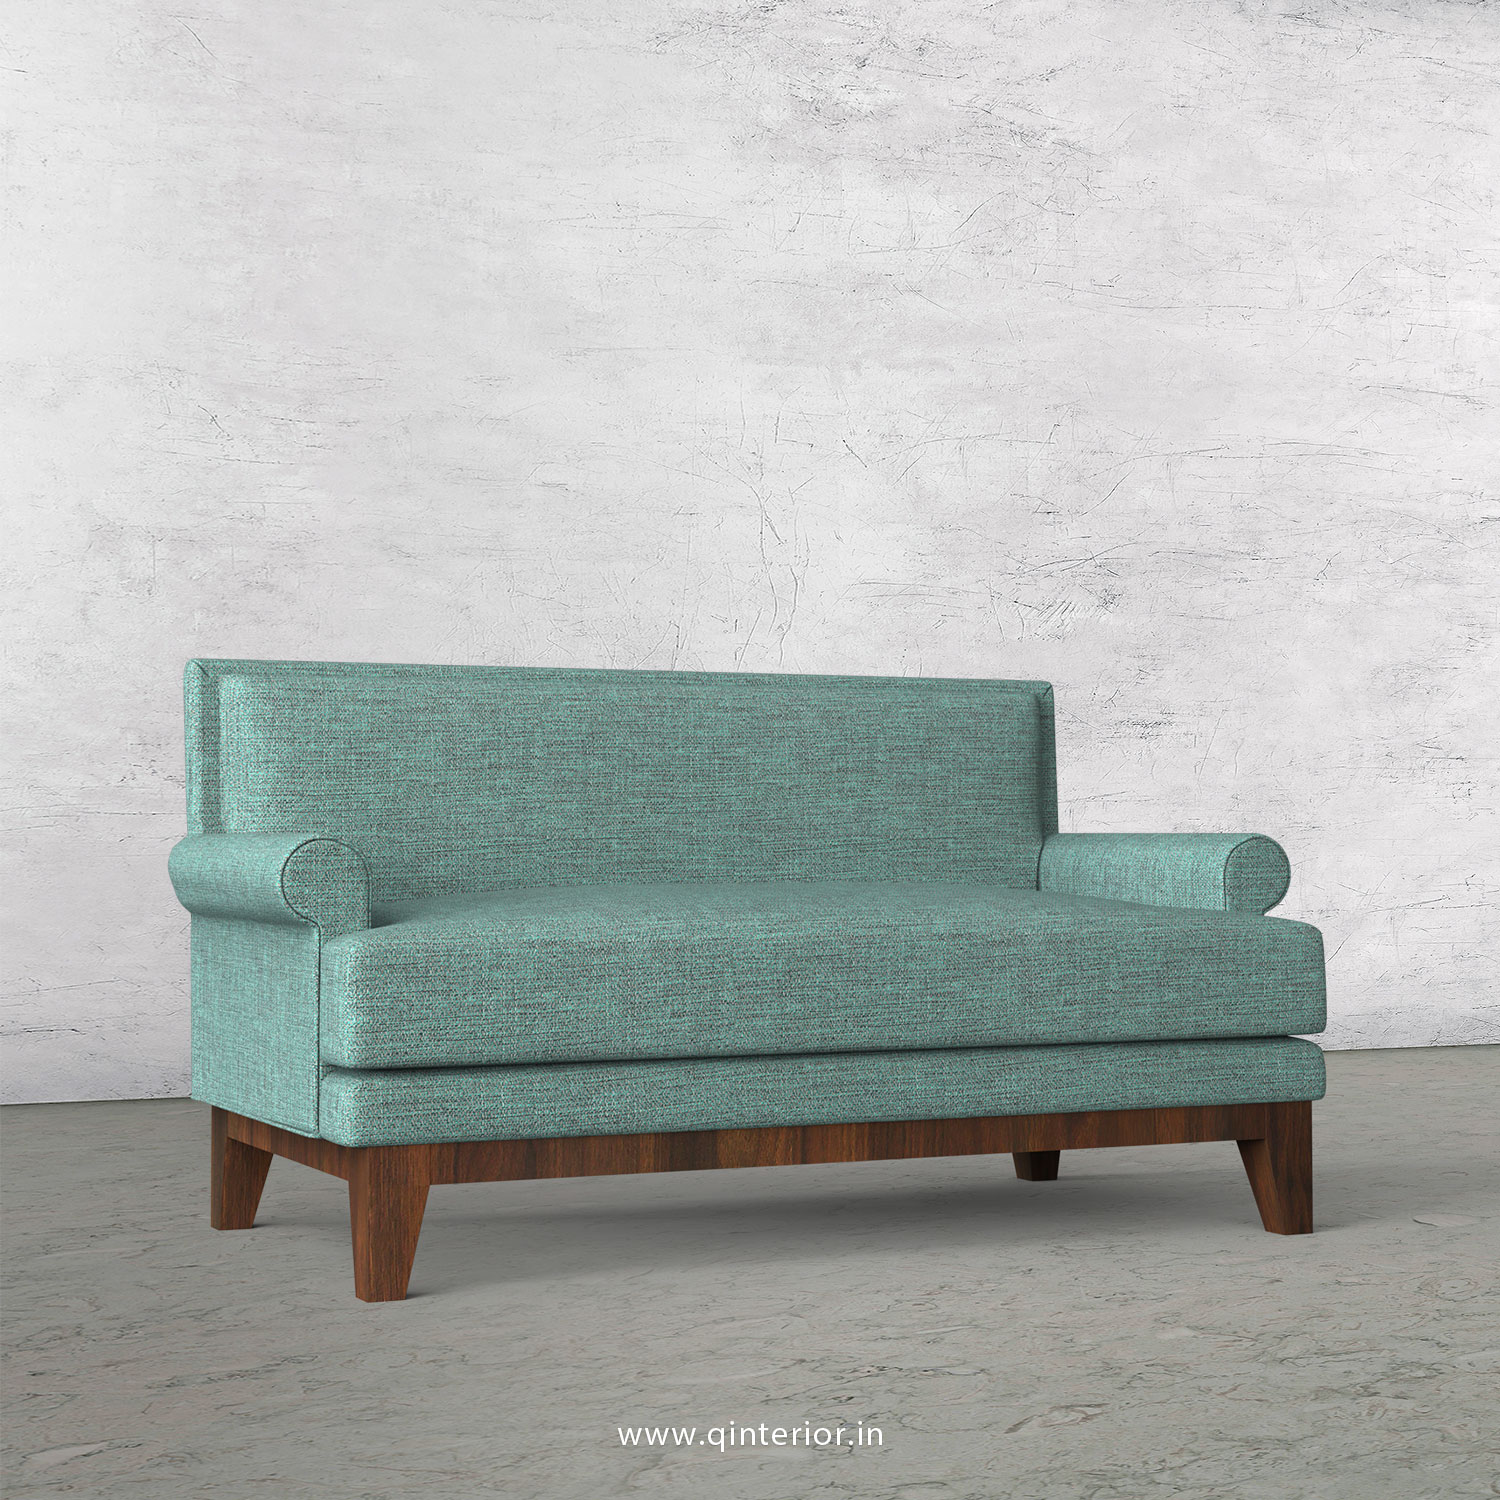 Aviana 2 Seater Sofa in Jacquard - SFA001 JQ23